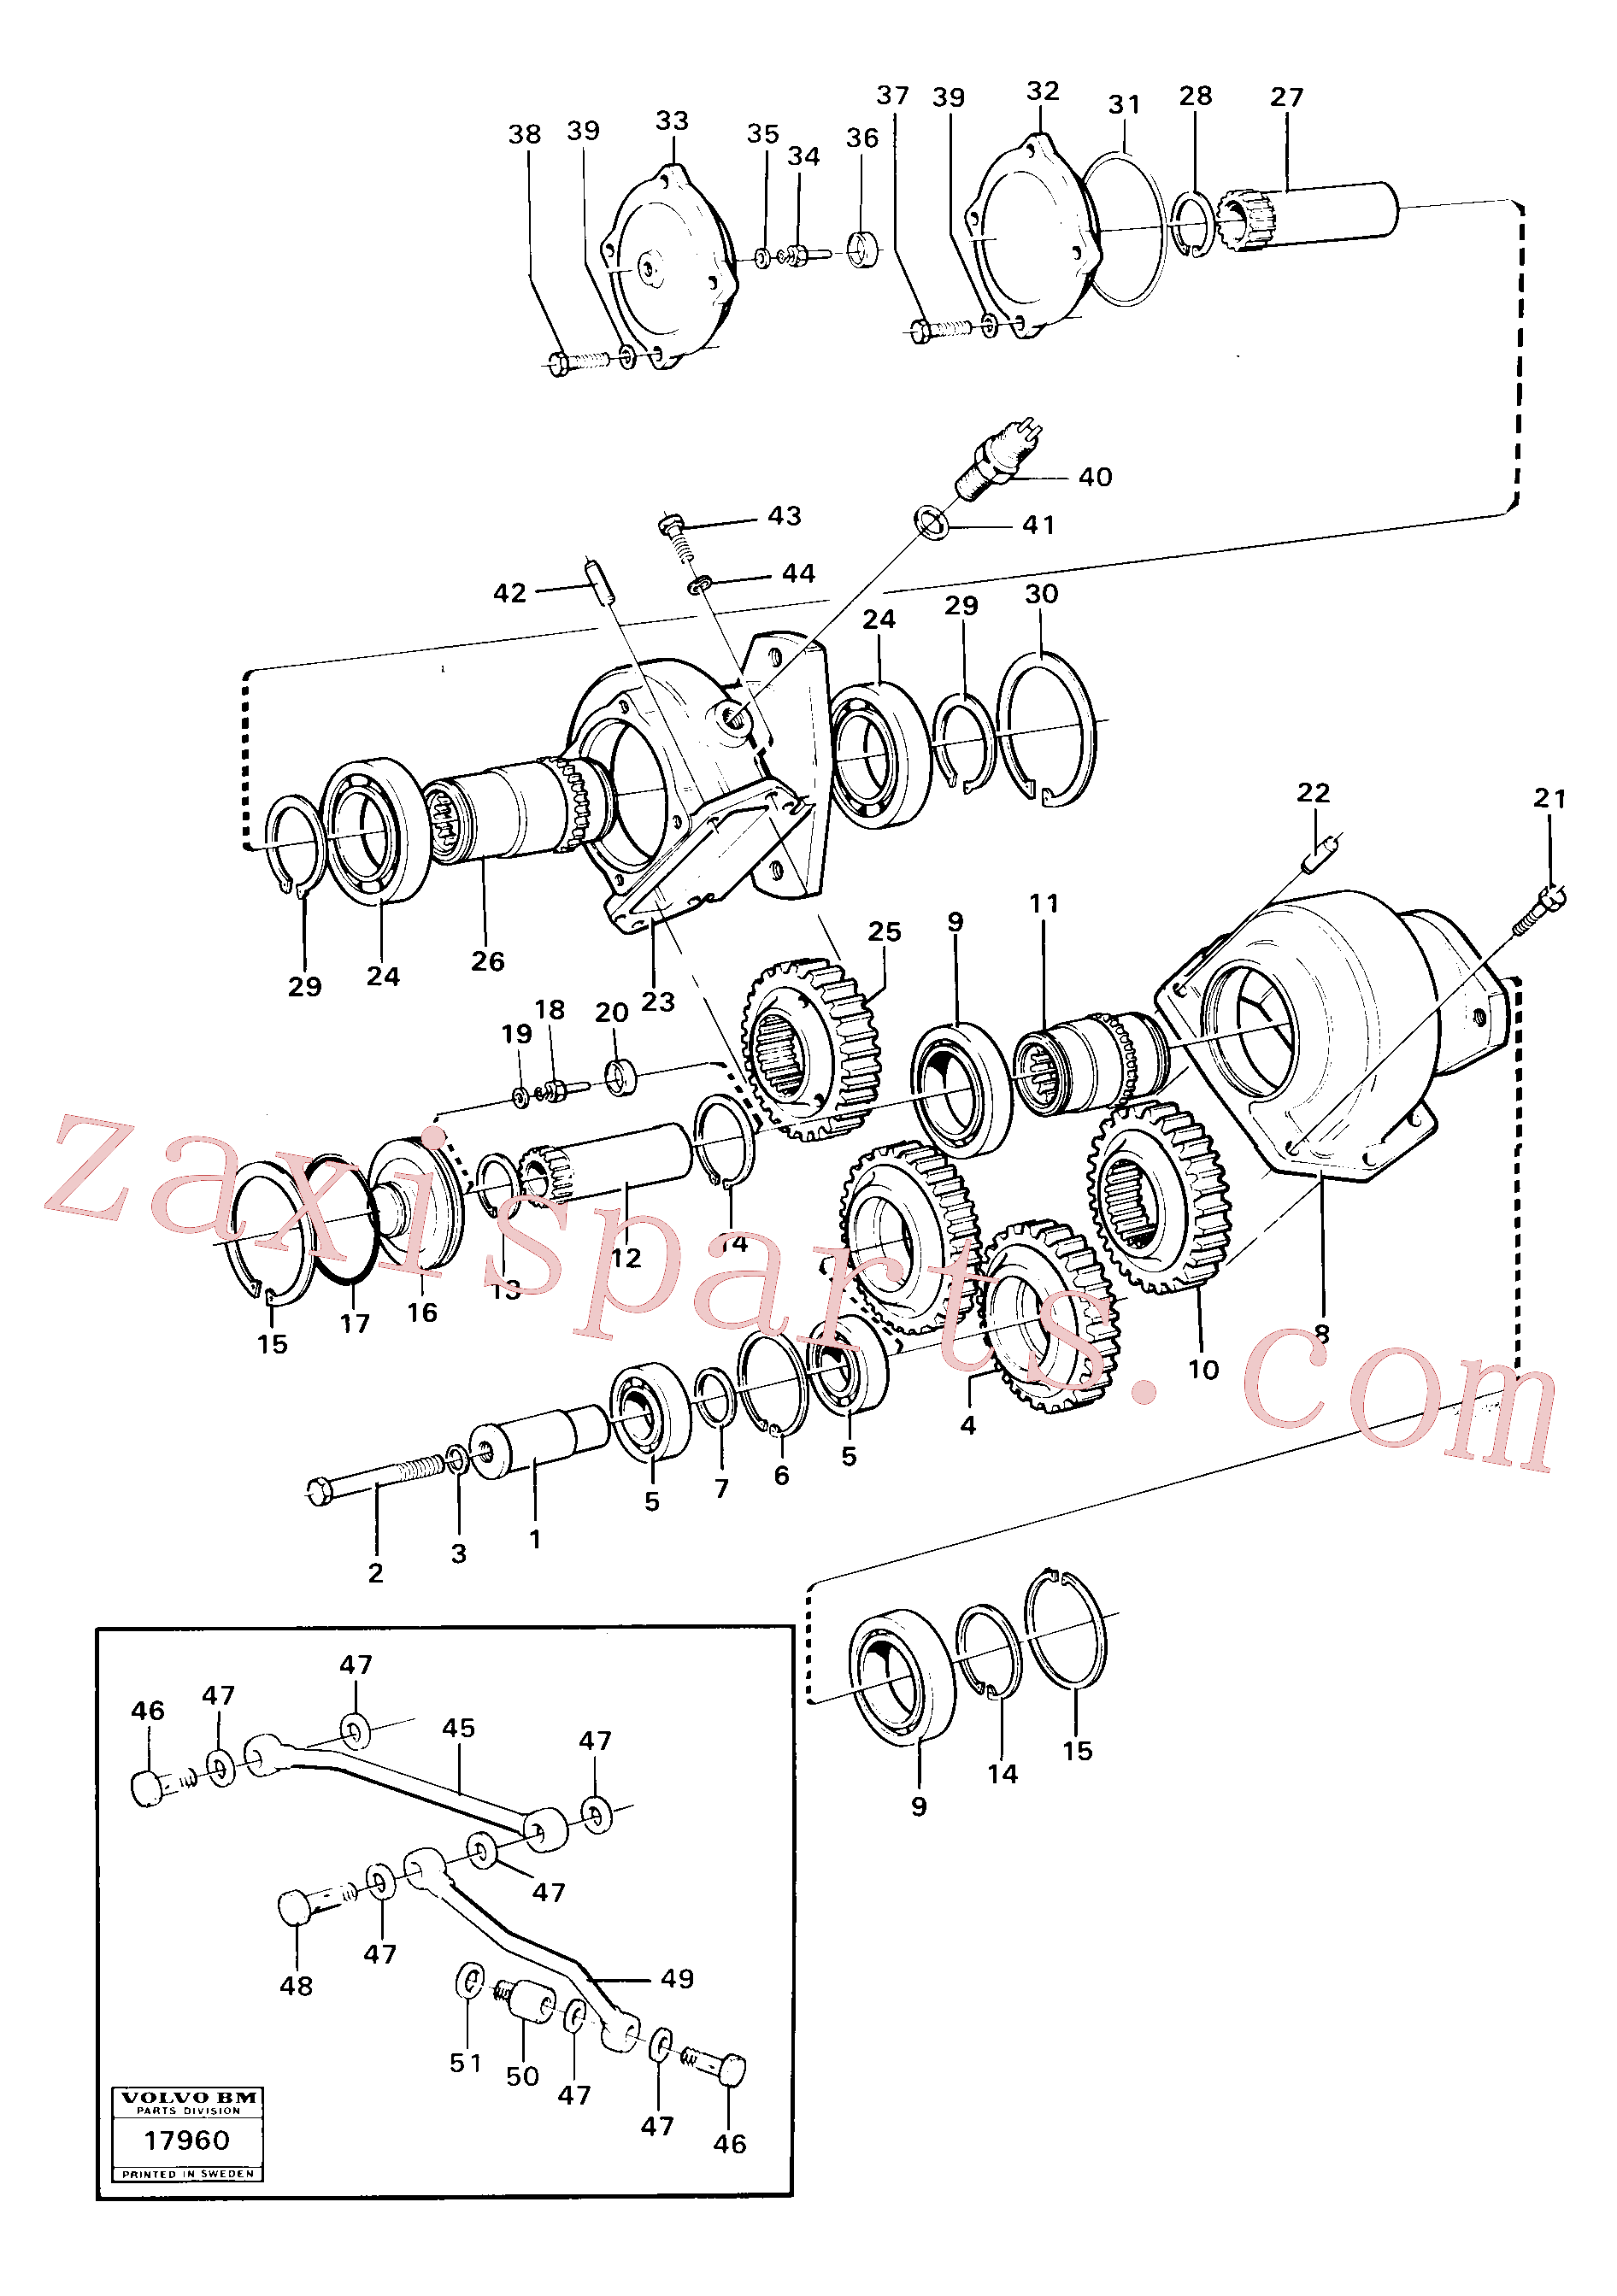 VOE4871042 for Volvo Pump drive(17960 assembly)